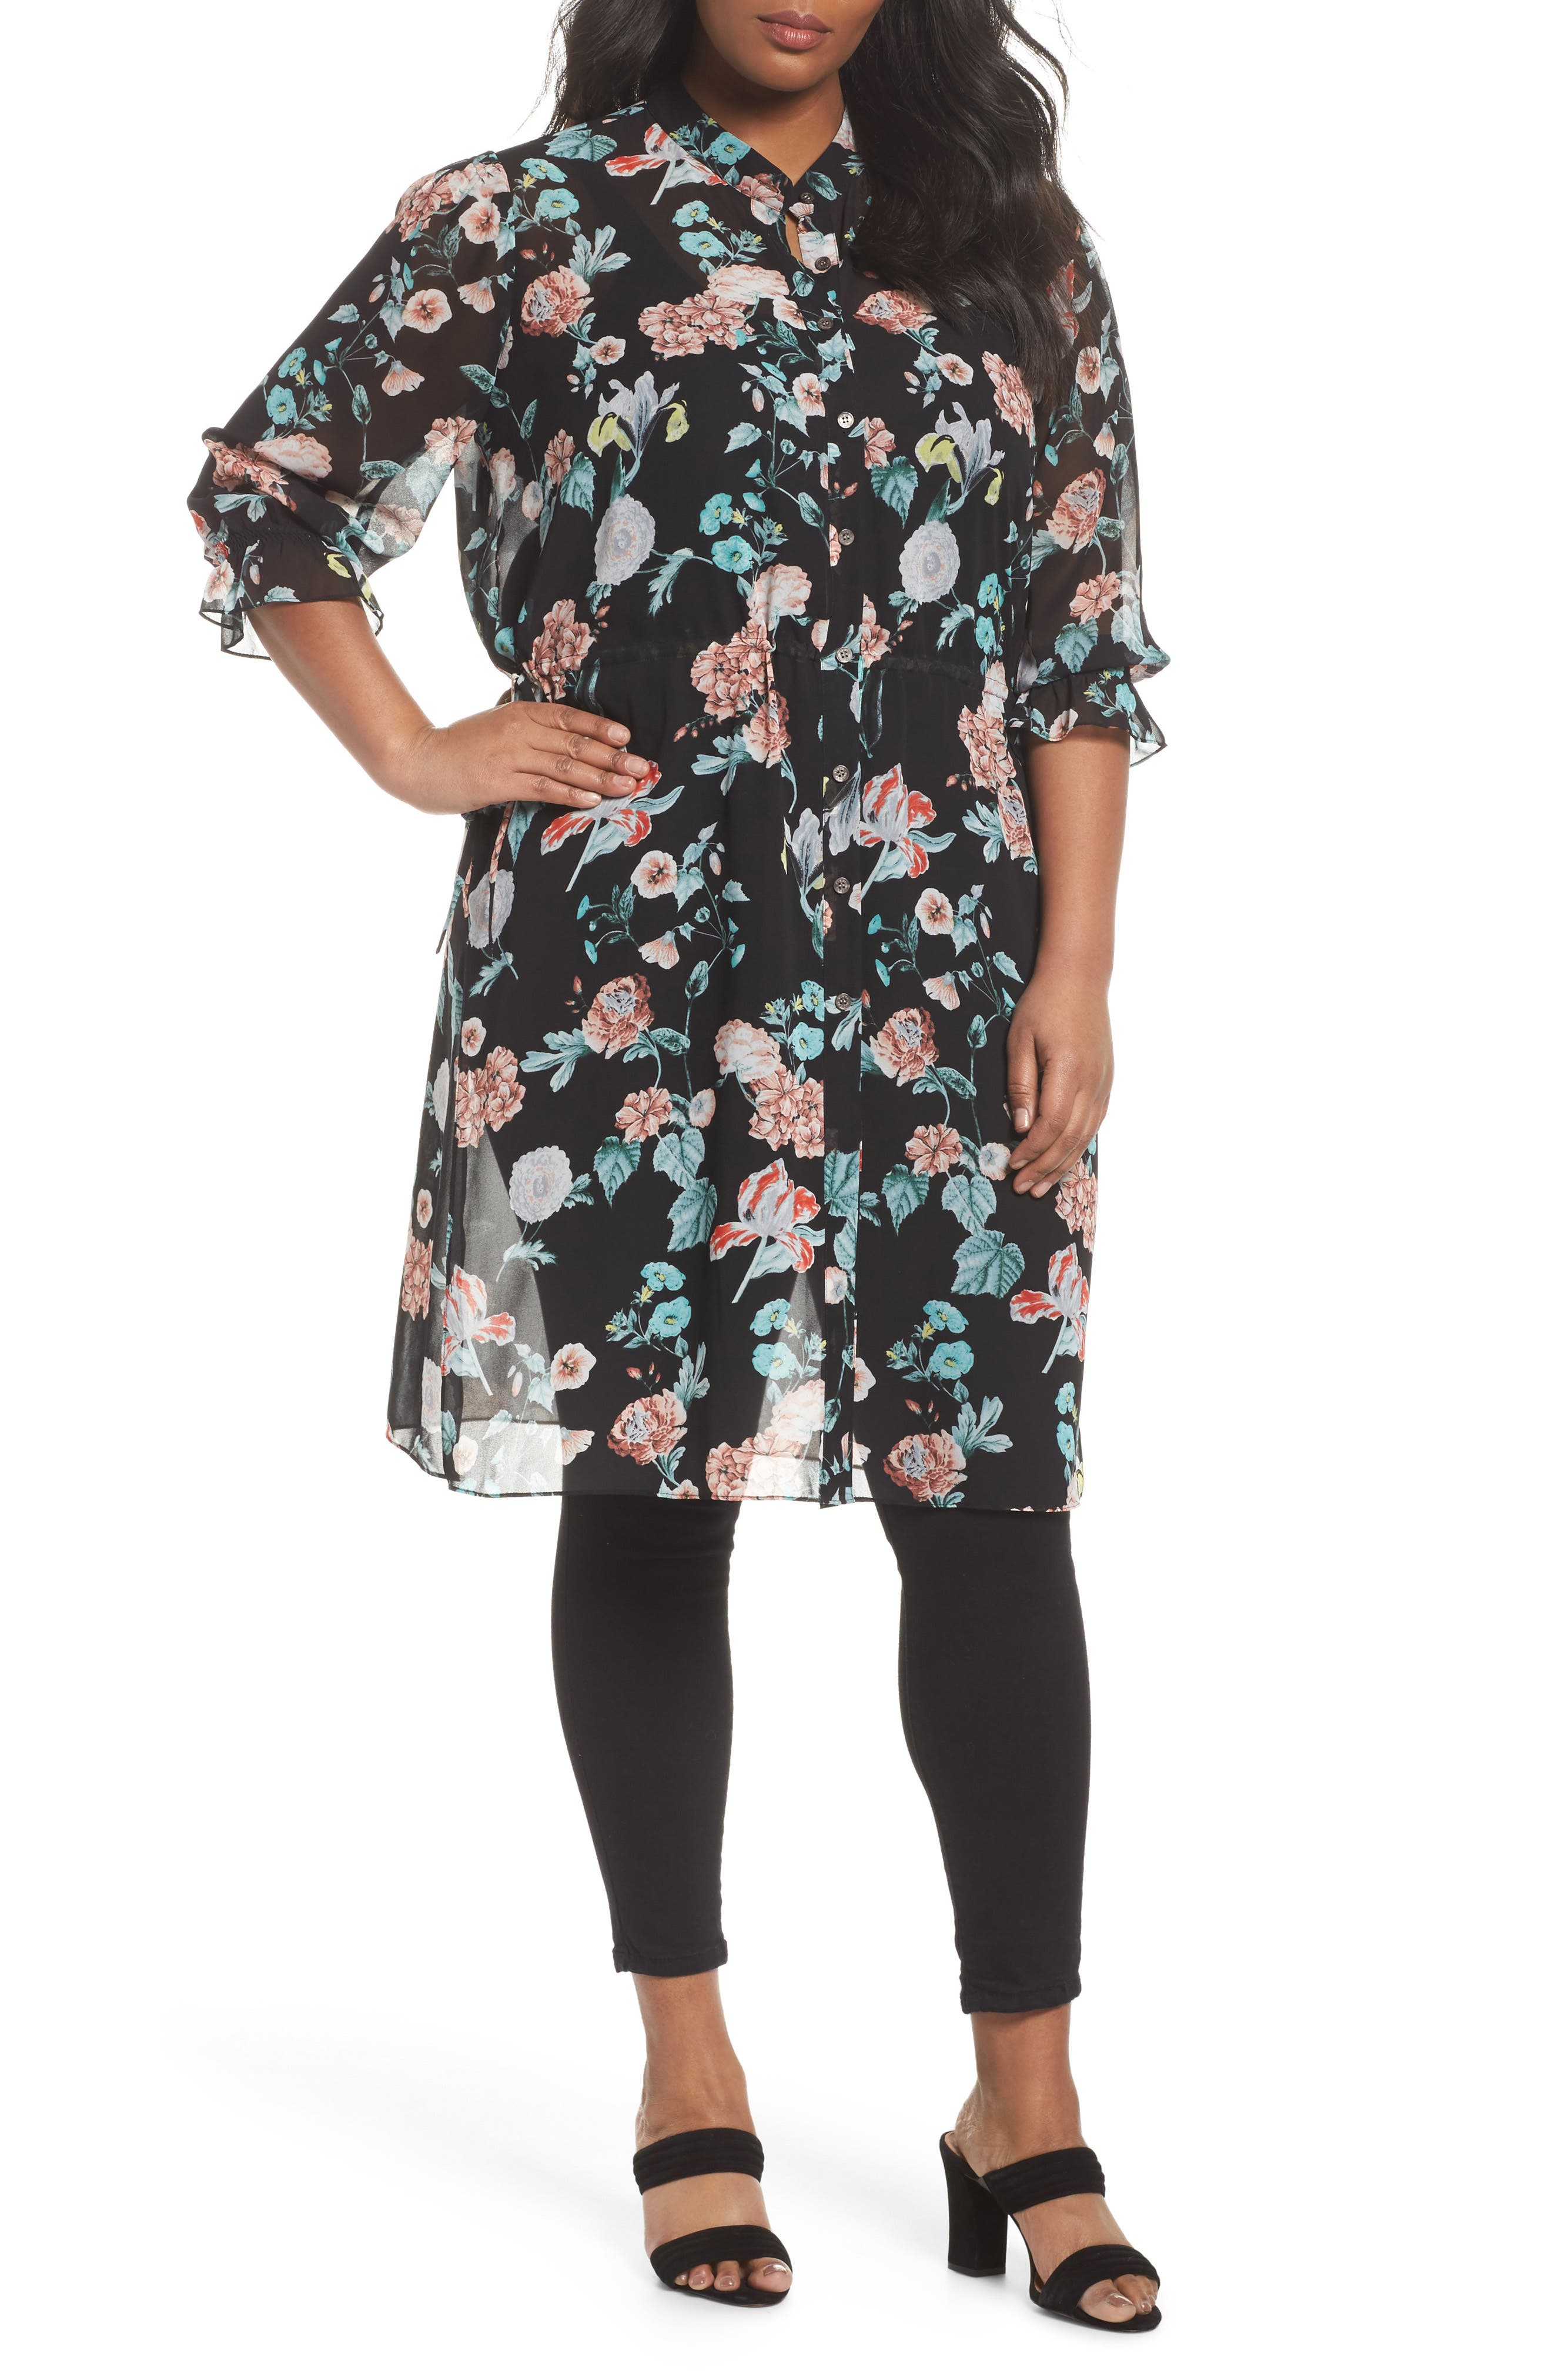 Faded Blooms Tunic Dress,                             Main thumbnail 1, color,                             Rich Black